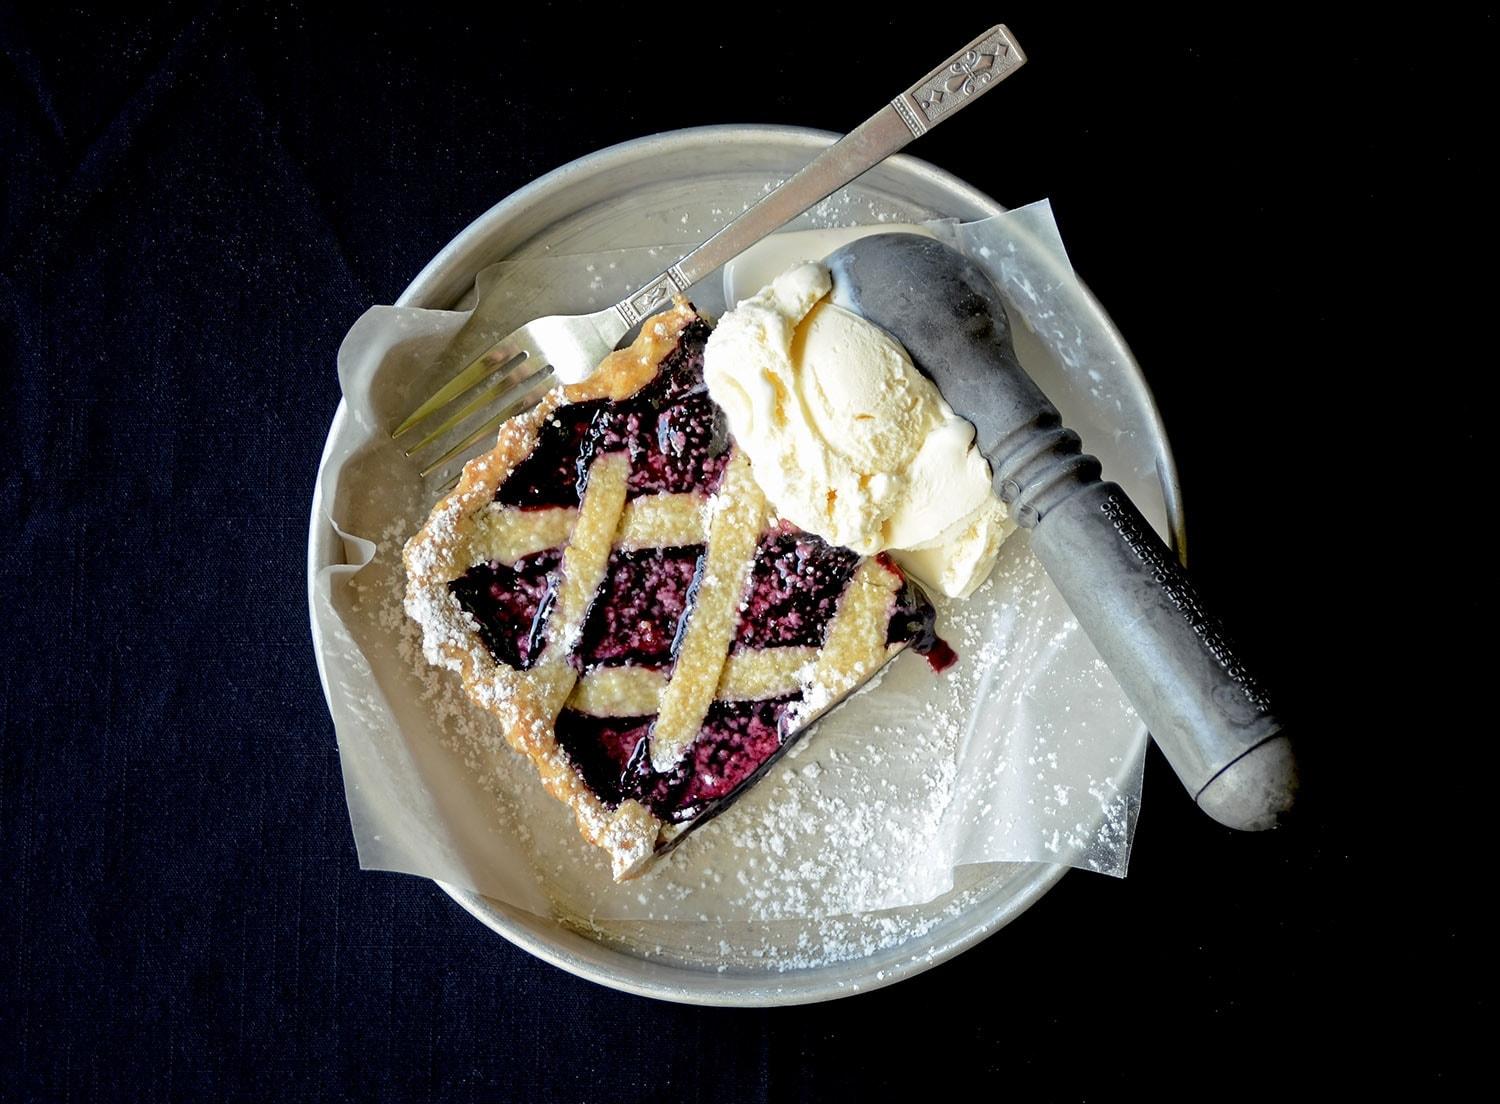 Mulberry Tart with Ice Cream Web - Mulberry Tart with Cardamom and Black Pepper